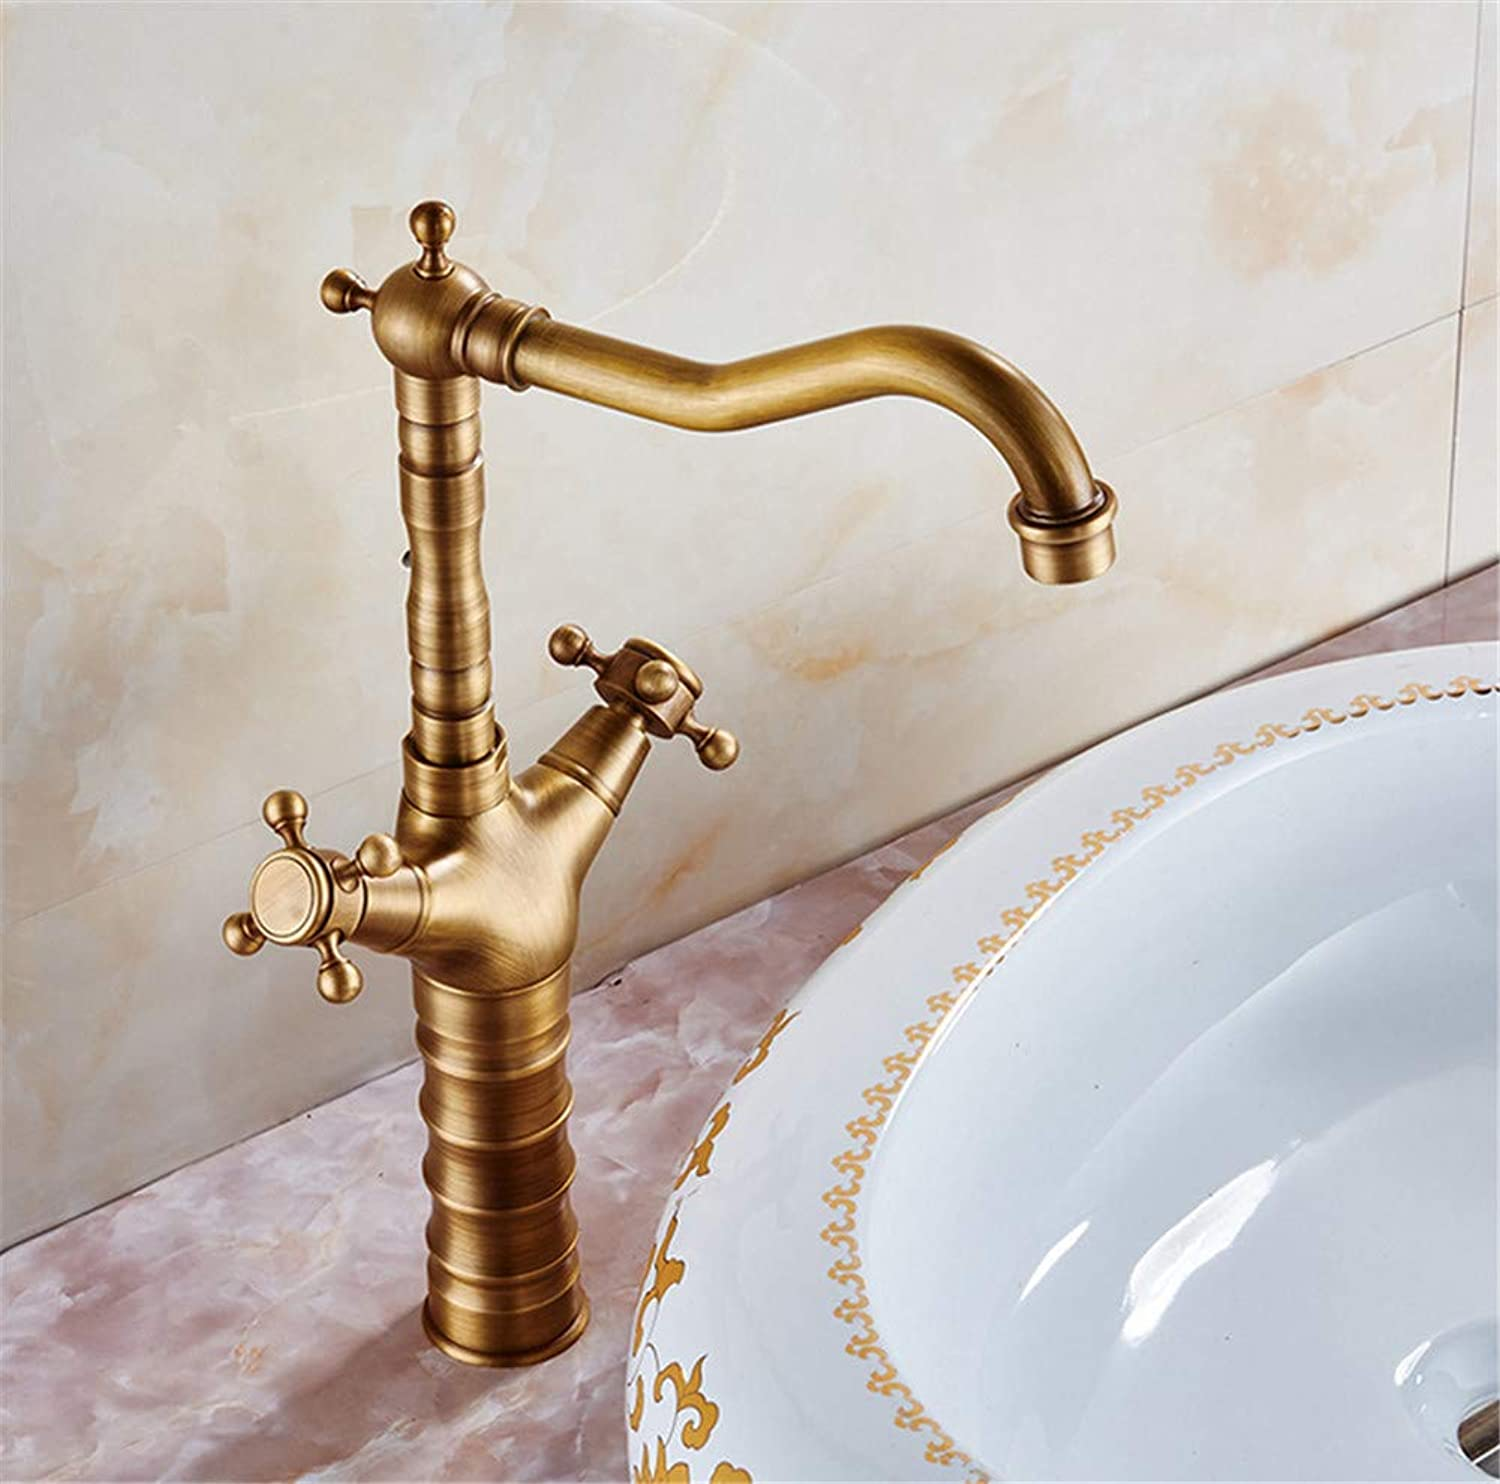 JONTON Faucet faucet faucet all copper basin above counter basin antique above counter basin kitchen washing dishes washing dishes washing dishes hot and cold antique bathroom